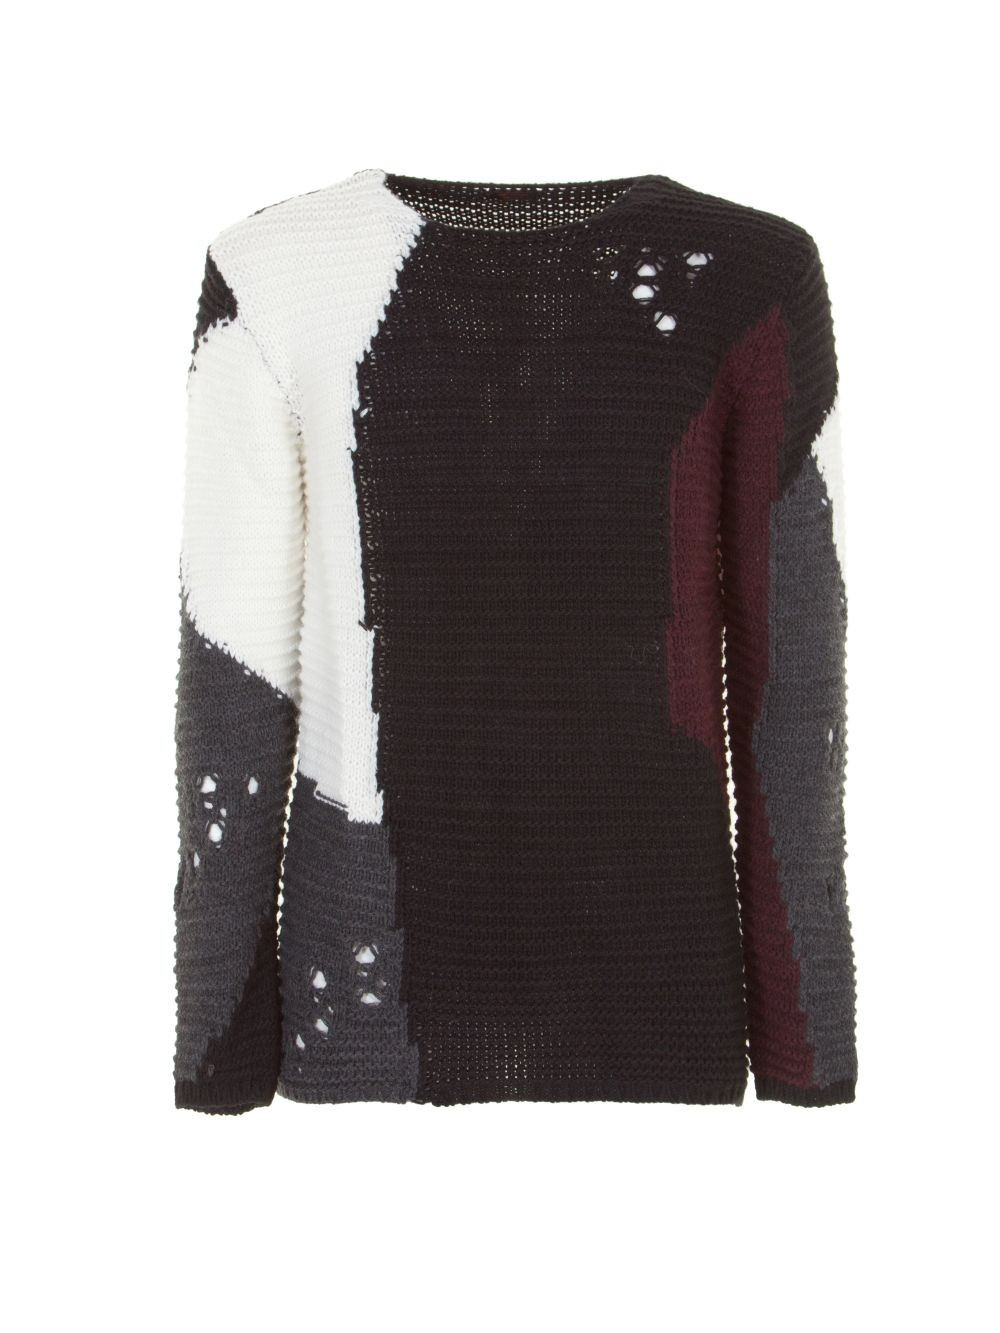 l'ultimo d530a 88633 maglione-distroyed-M3614ENIK-imperial-uomo